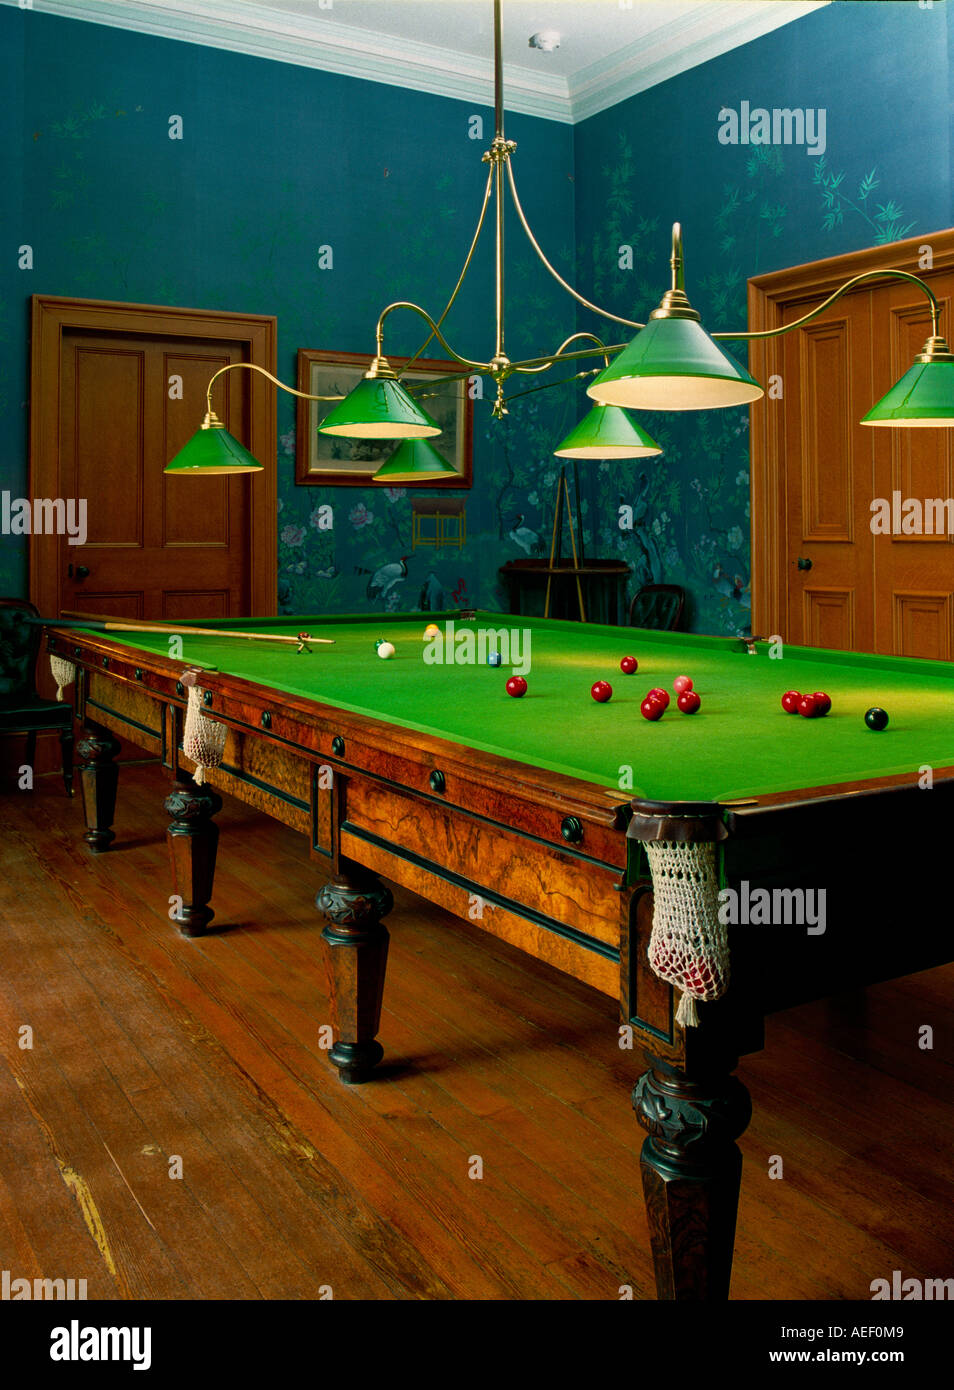 The Billiards Room In The Victorian Stately Home Of Muckross House Stock Photo Royalty Free